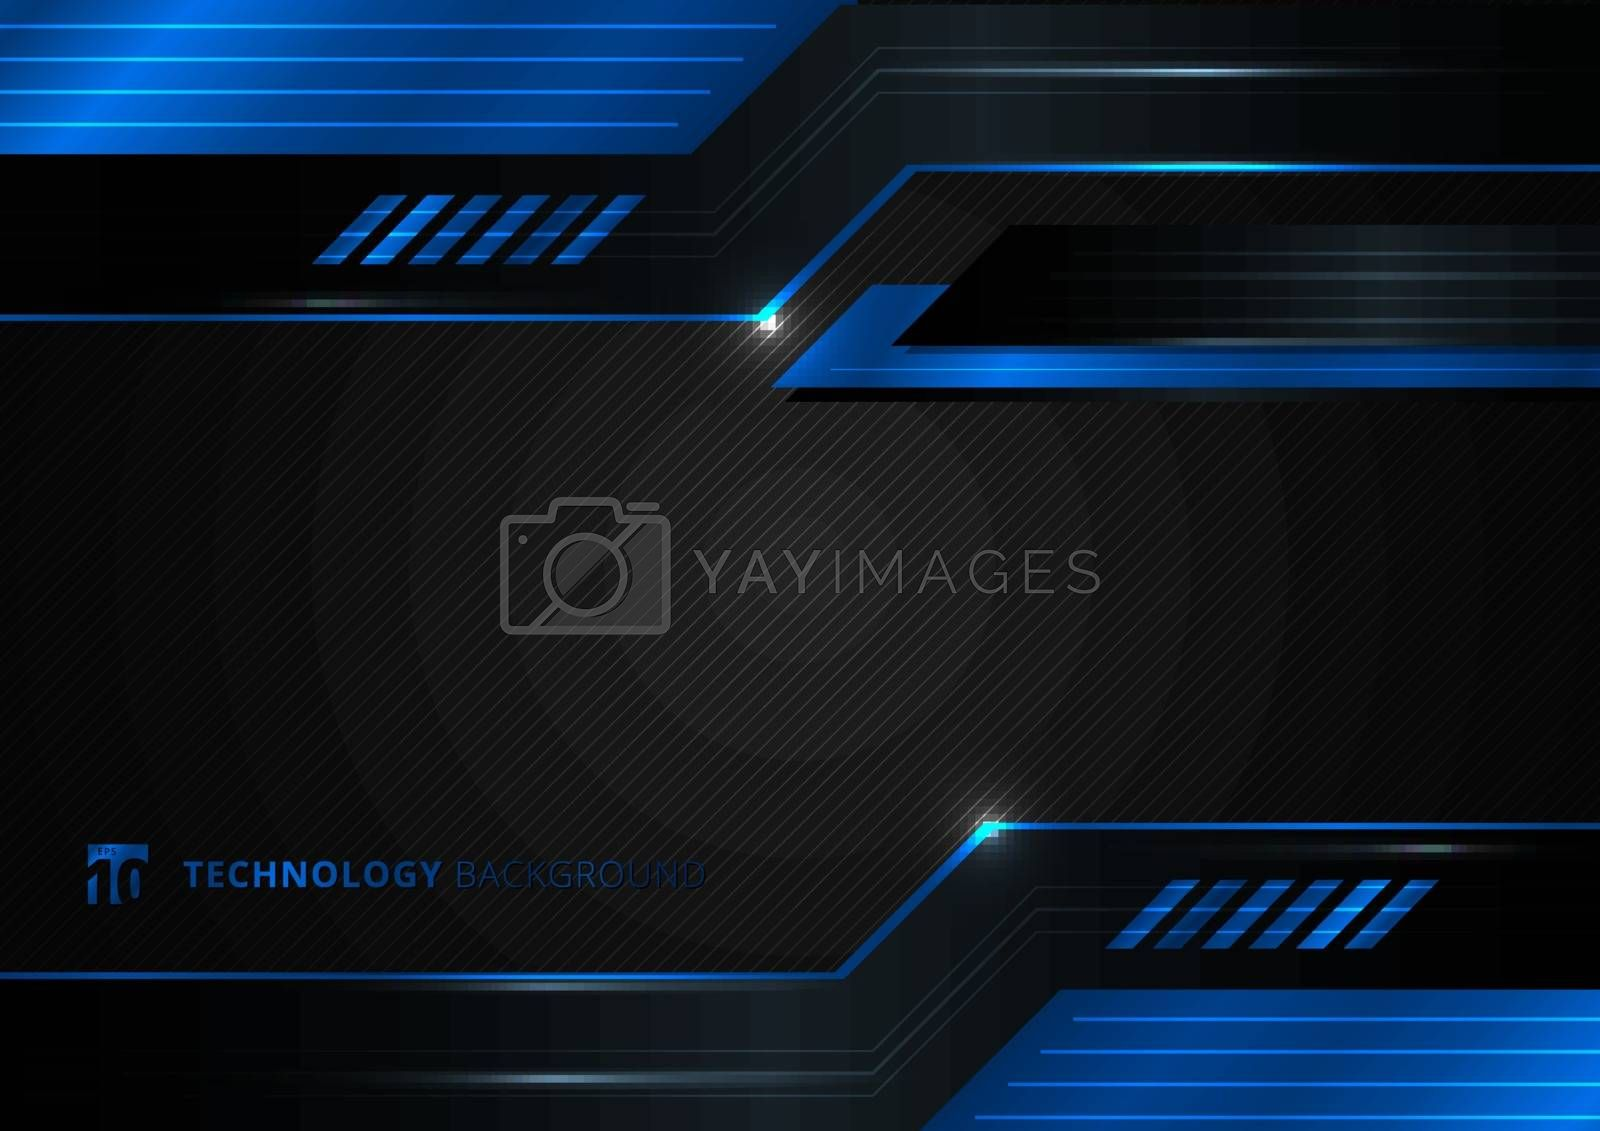 Abstract technology geometric blue and black color shiny motion background. Template with header and footers for brochure, print, ad, magazine, poster, website, magazine, leaflet, annual report. Vector corporate